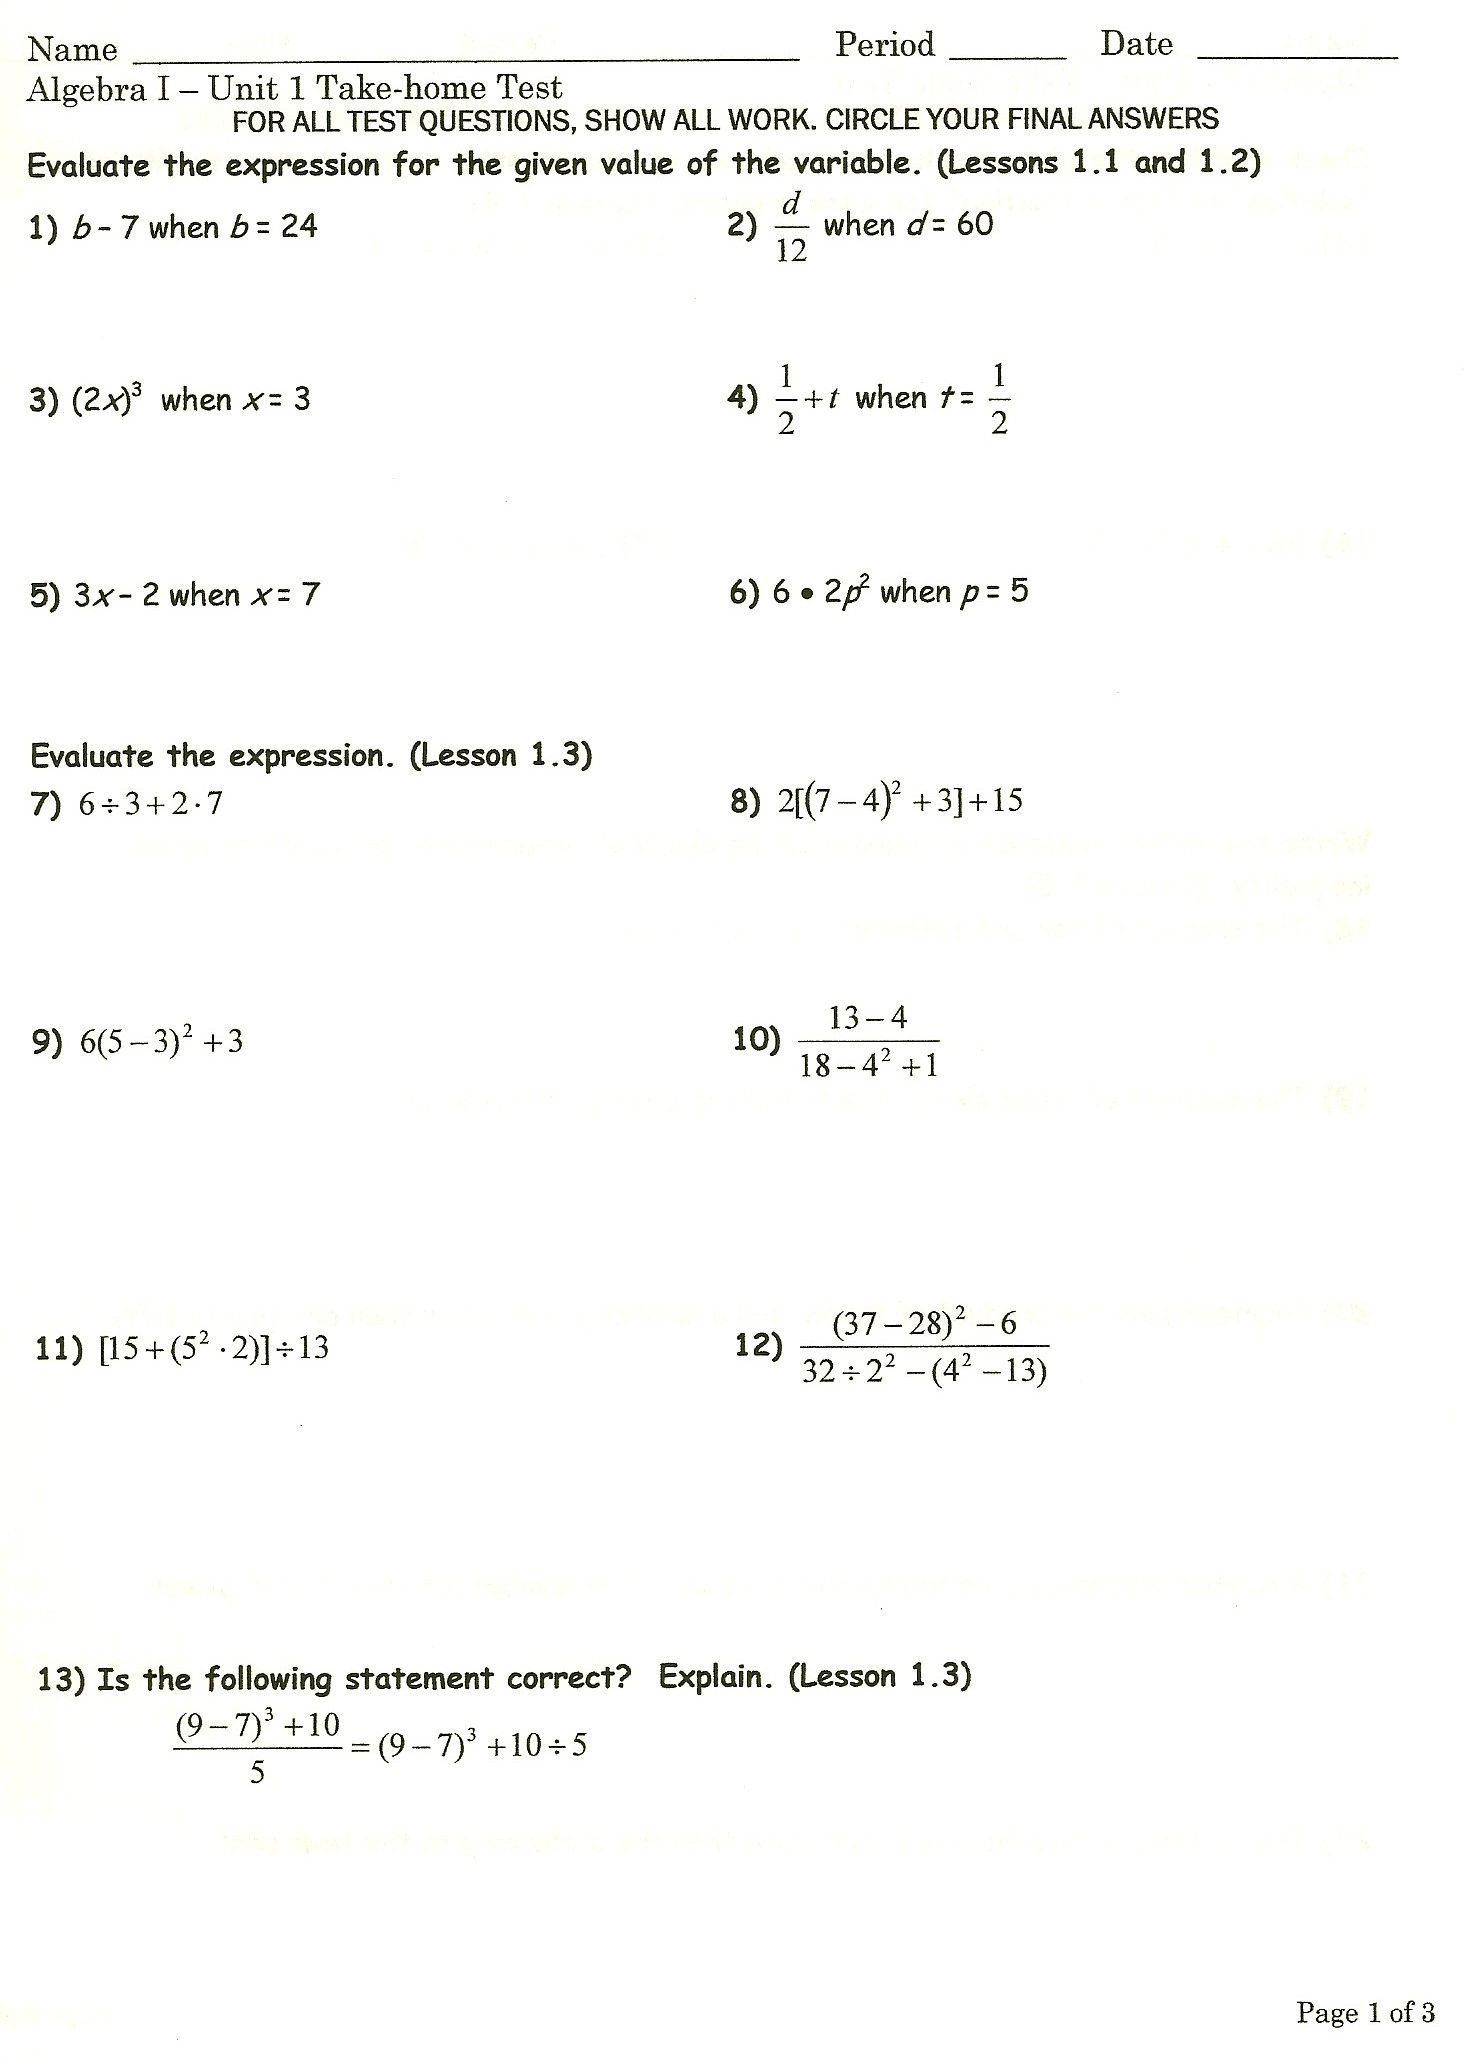 Algebra 2 Worksheets Chapter 1